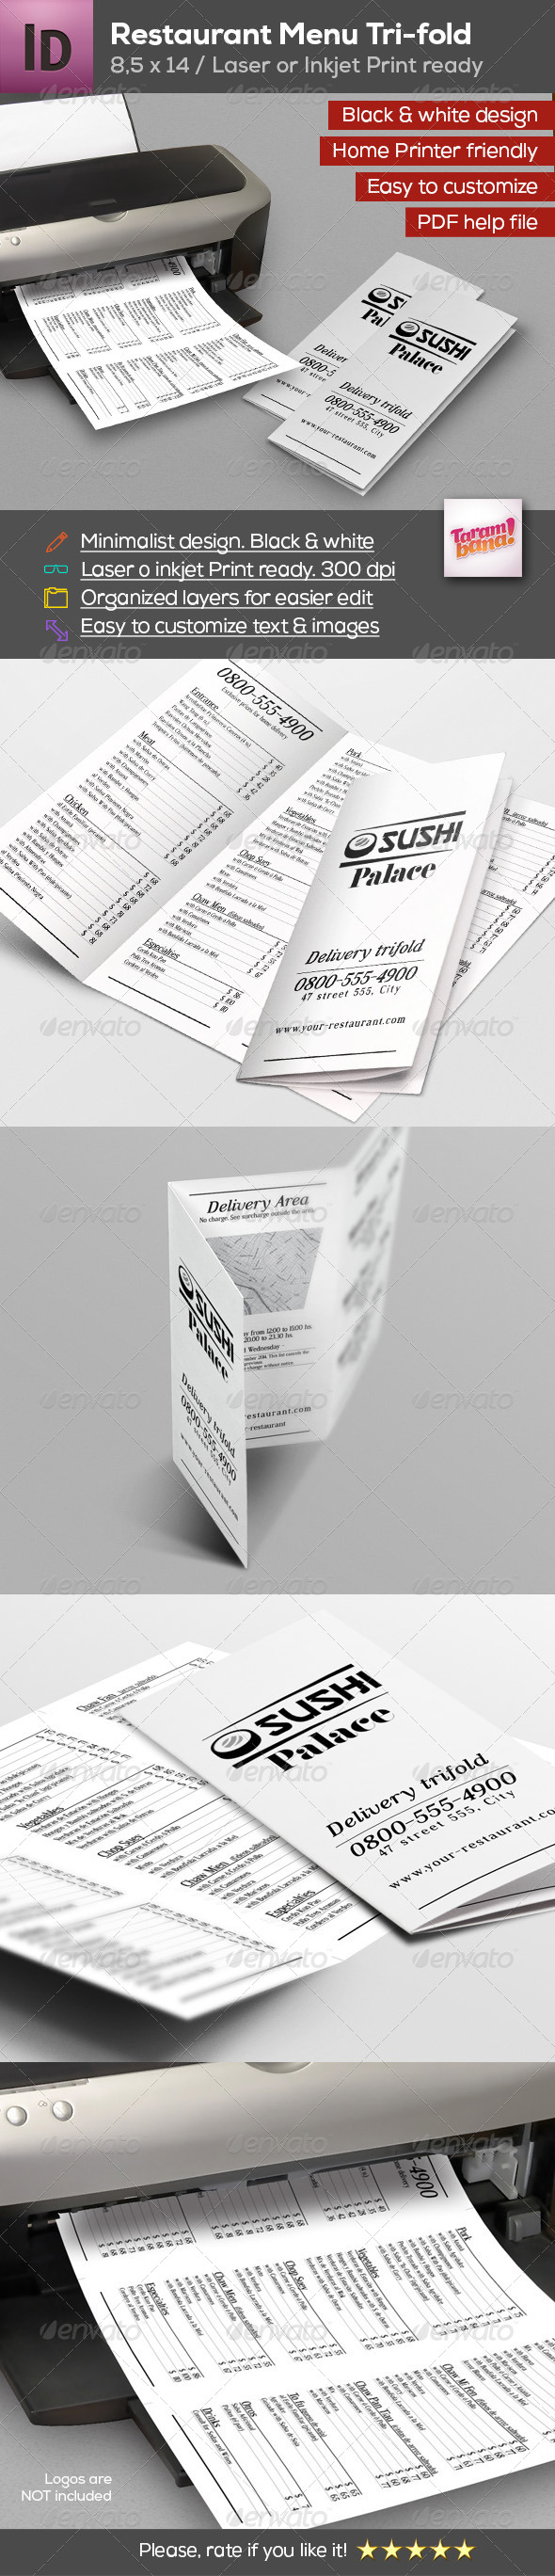 GraphicRiver Restaurant Menu Trifold Friendly Laser Printer 8325954